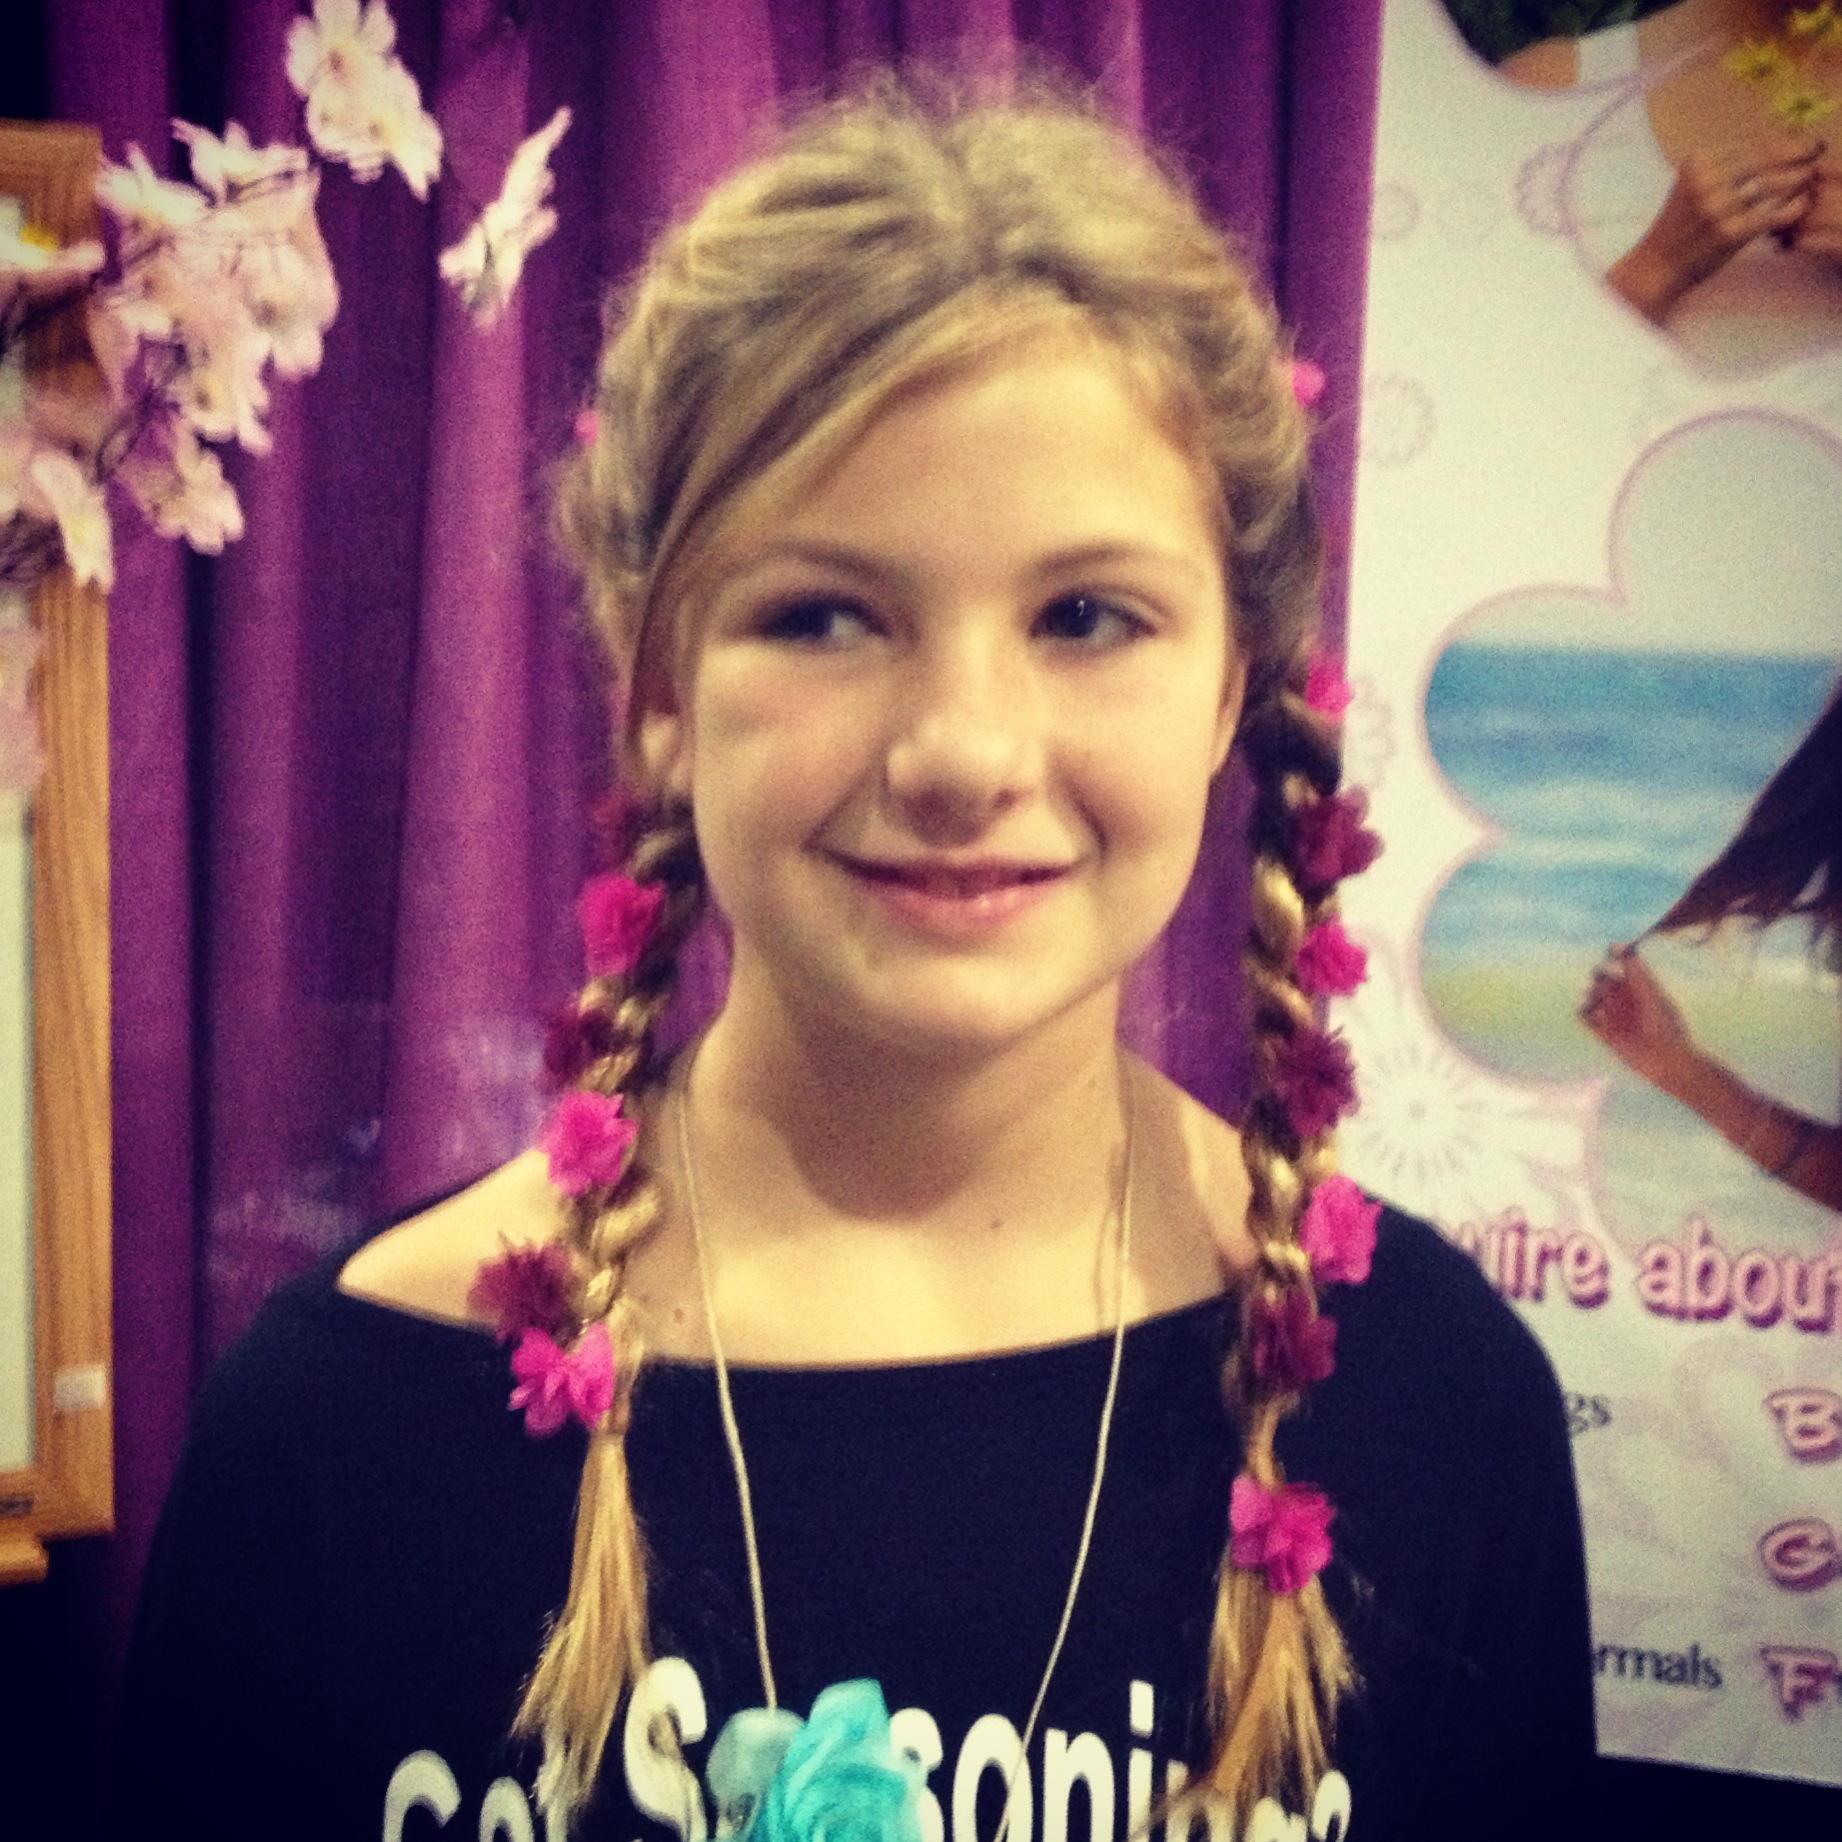 Two braids are funner than one on our adorable fan!